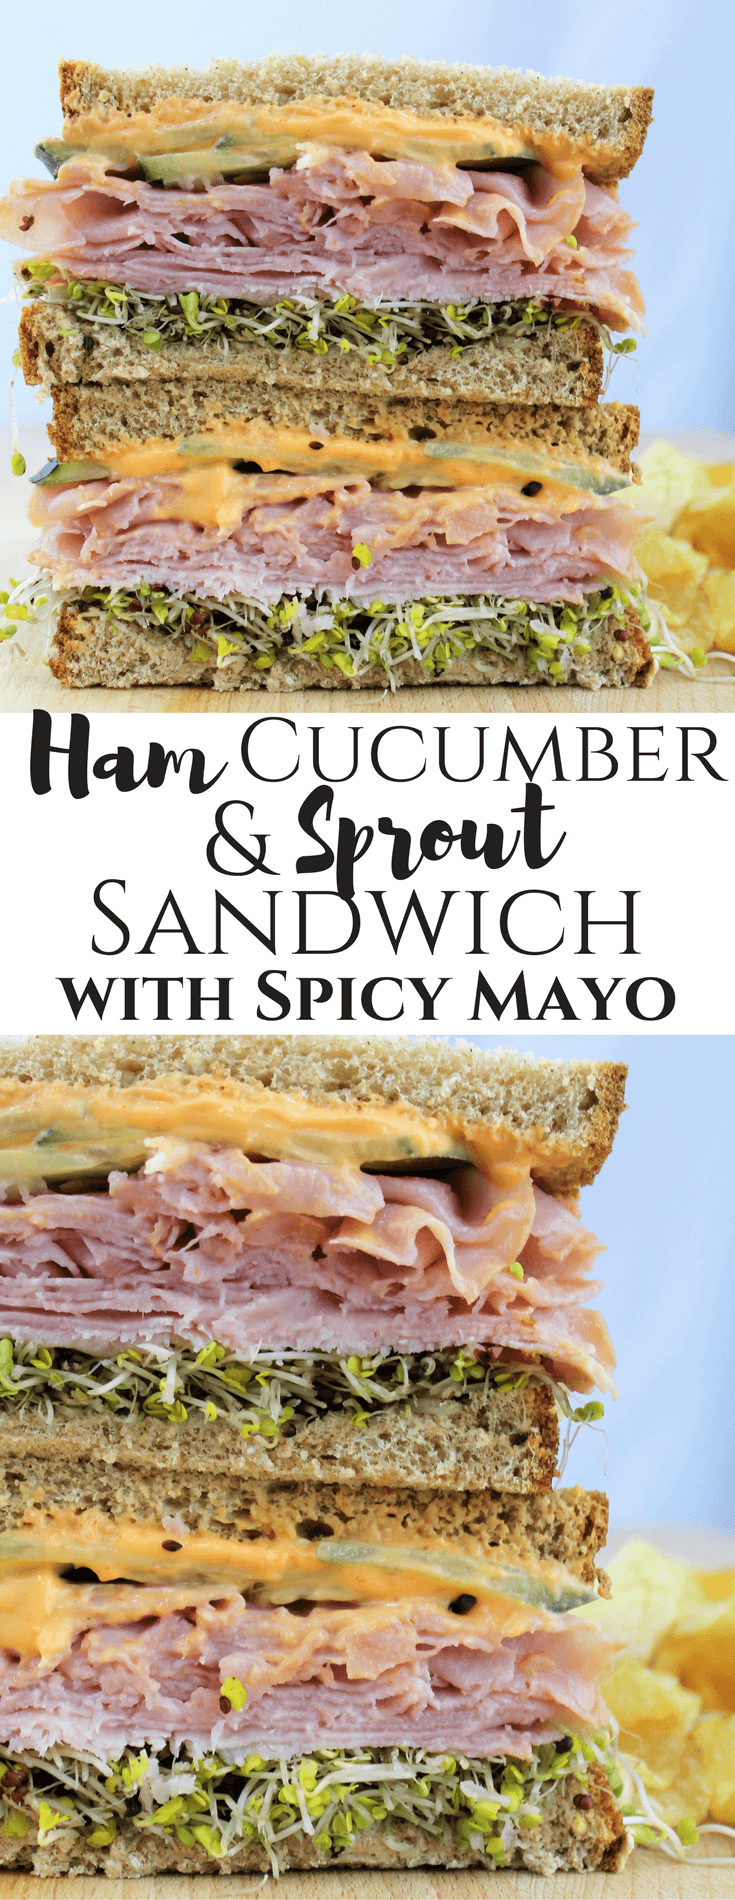 #SandwichWithTheBest, #ad, Ham Cucumber & Sprout Sandwich with Spicy Mayo